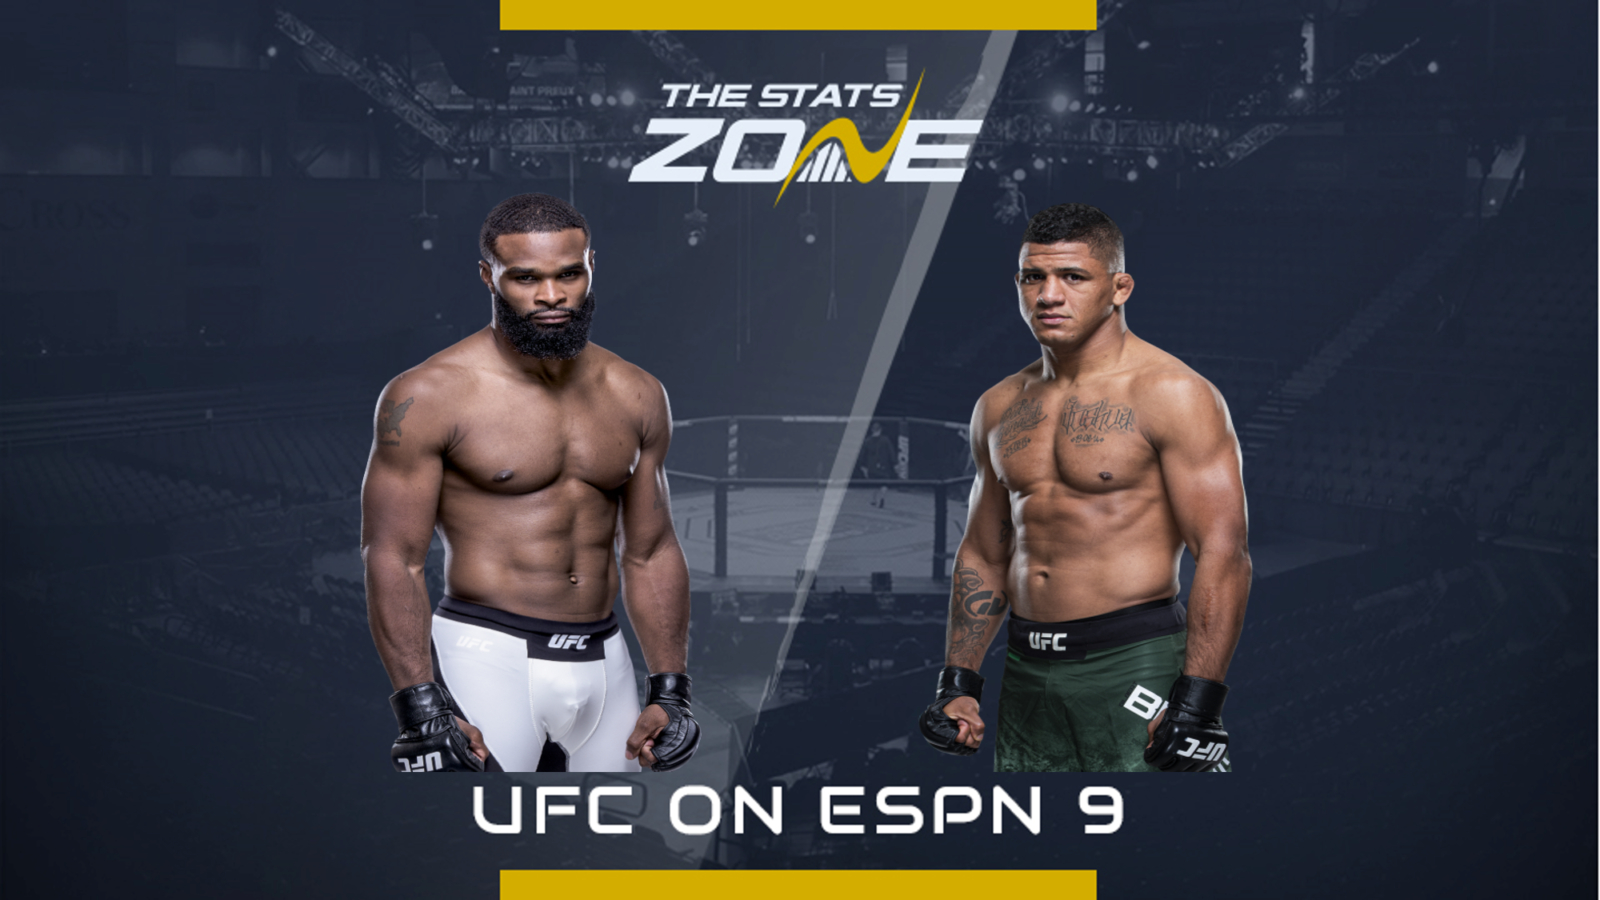 Mma Preview Tyron Woodley Vs Gilbert Burns At Ufc On Espn 9 The Stats Zone